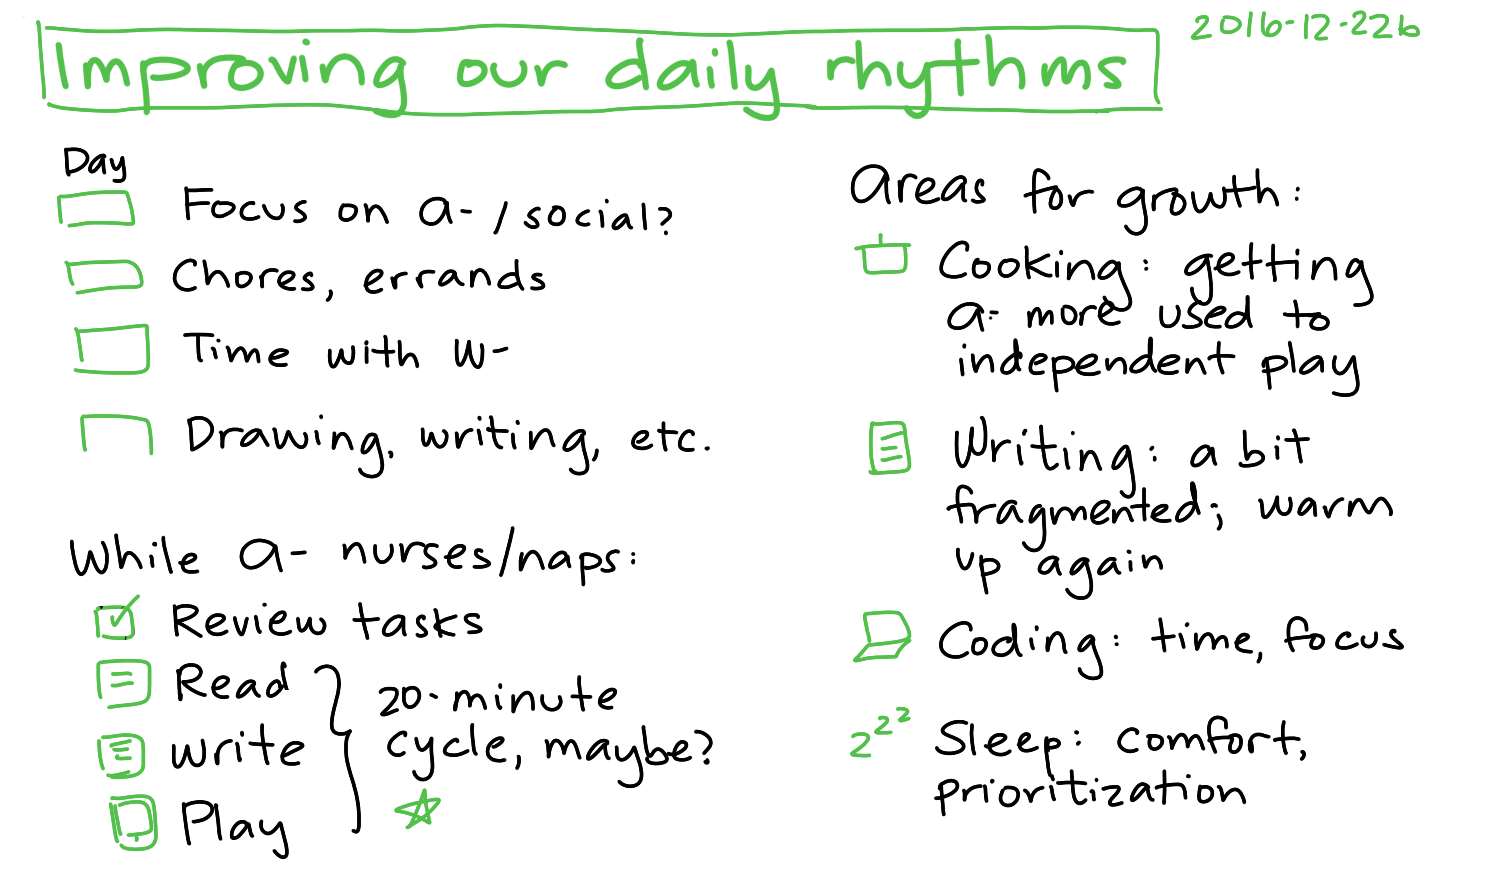 2016-12-22b Improving our daily rhythms #parenting #time #routines.png